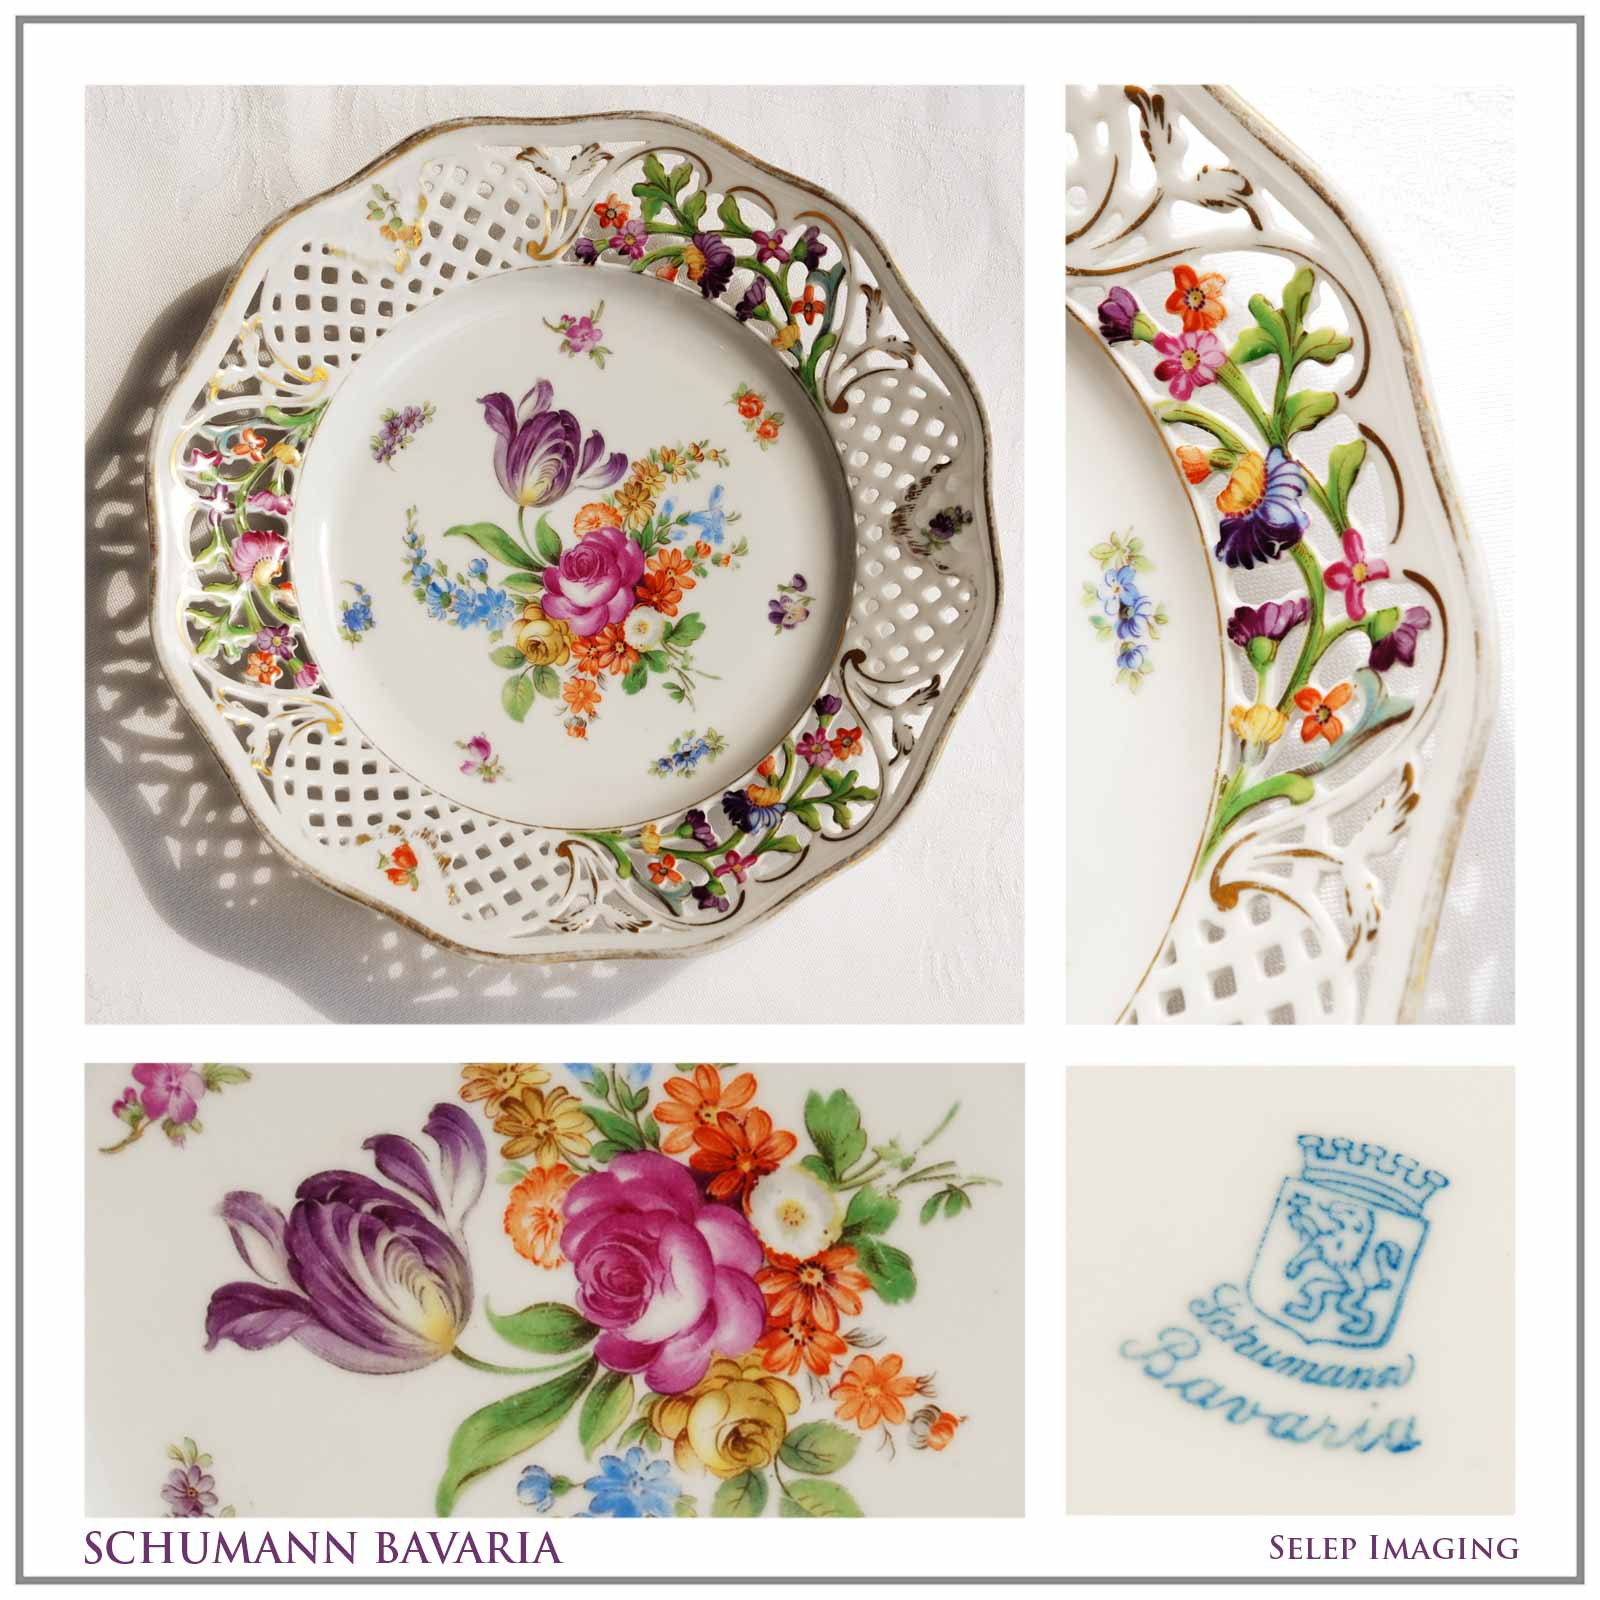 Schumann Bavaria china plate Reticulated porcelain